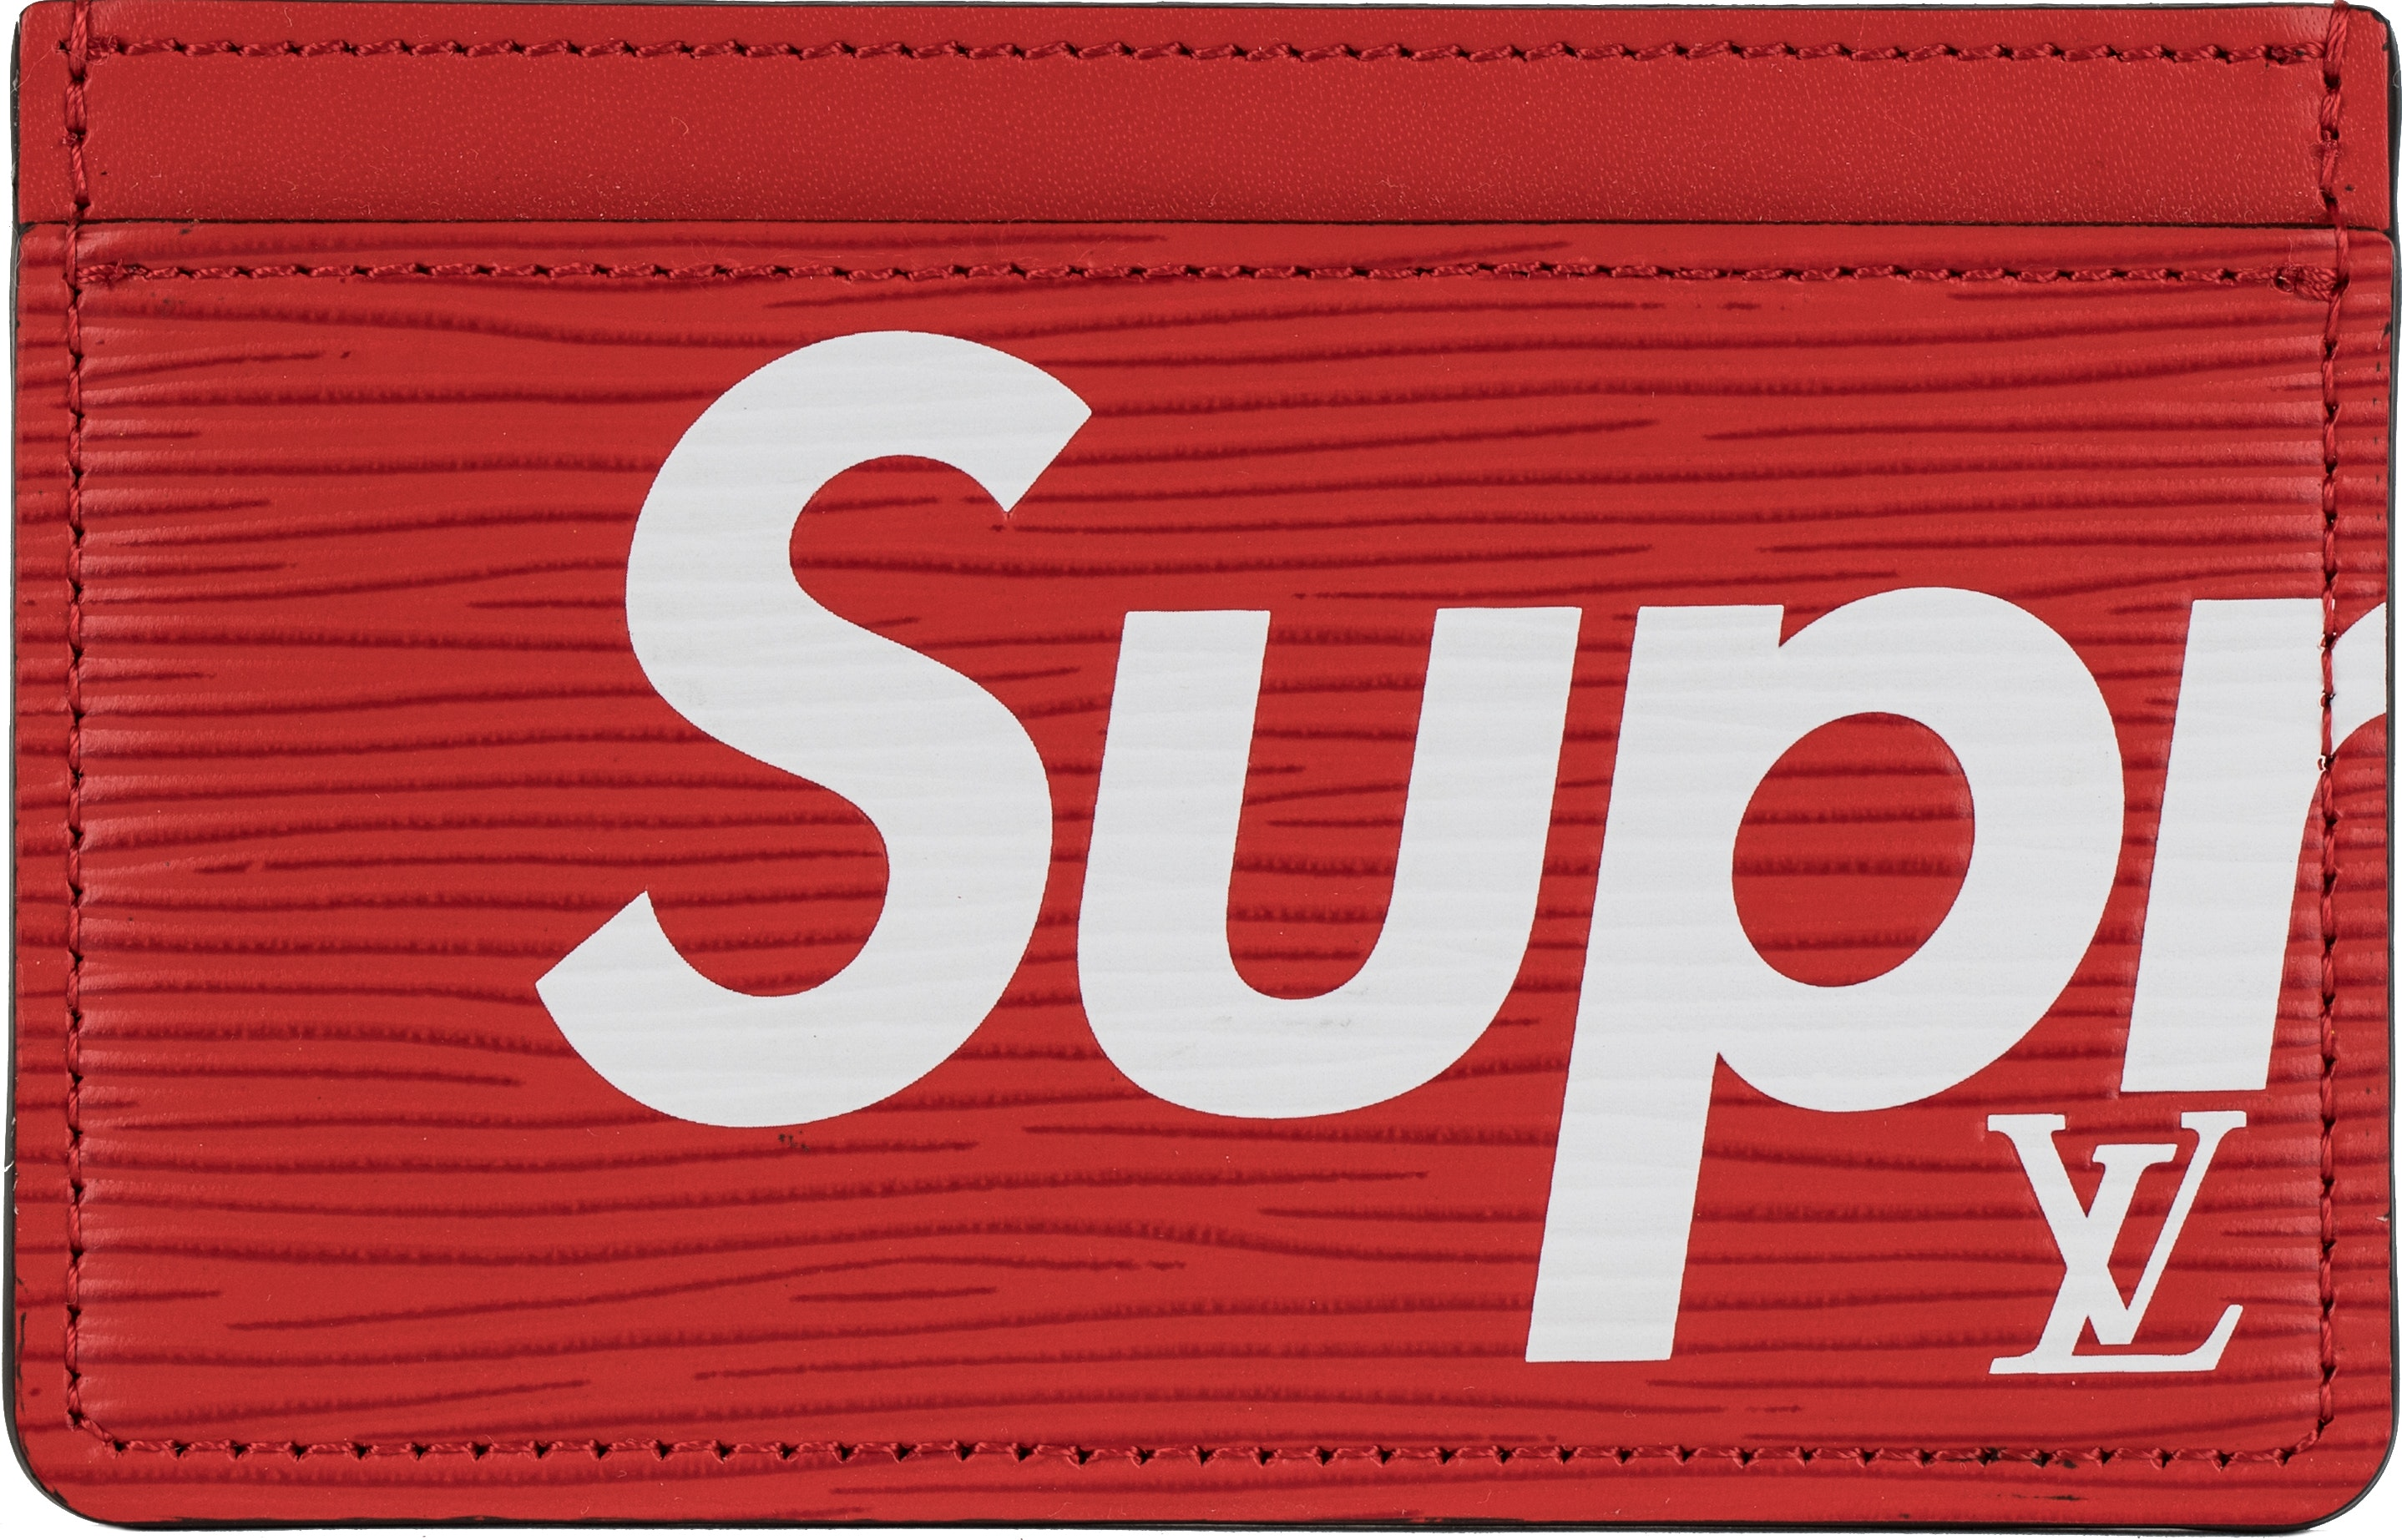 louis vuitton supreme